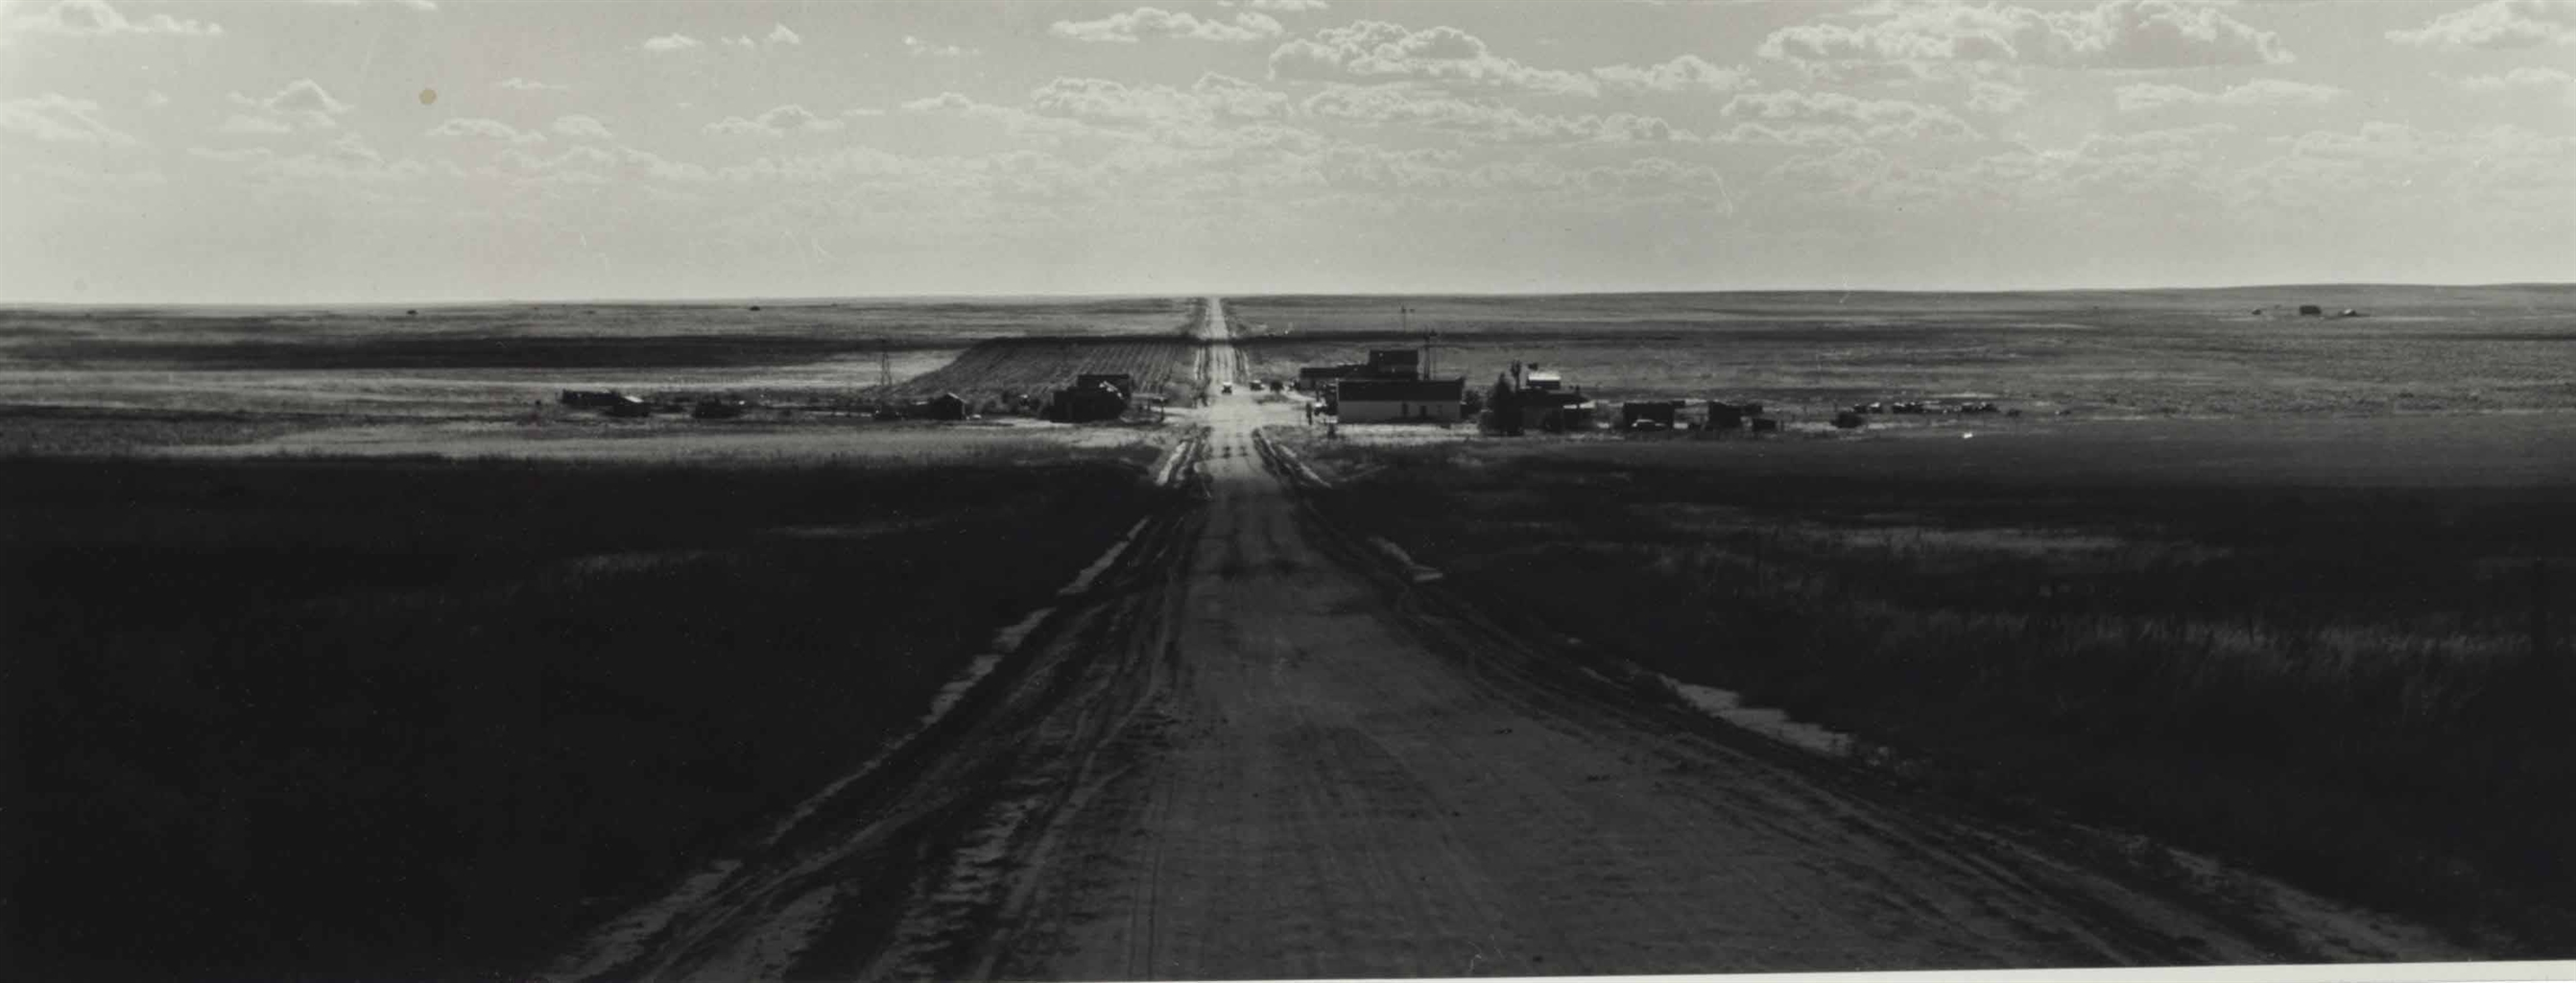 Dorothea Lange-Untitled (Road)-1930